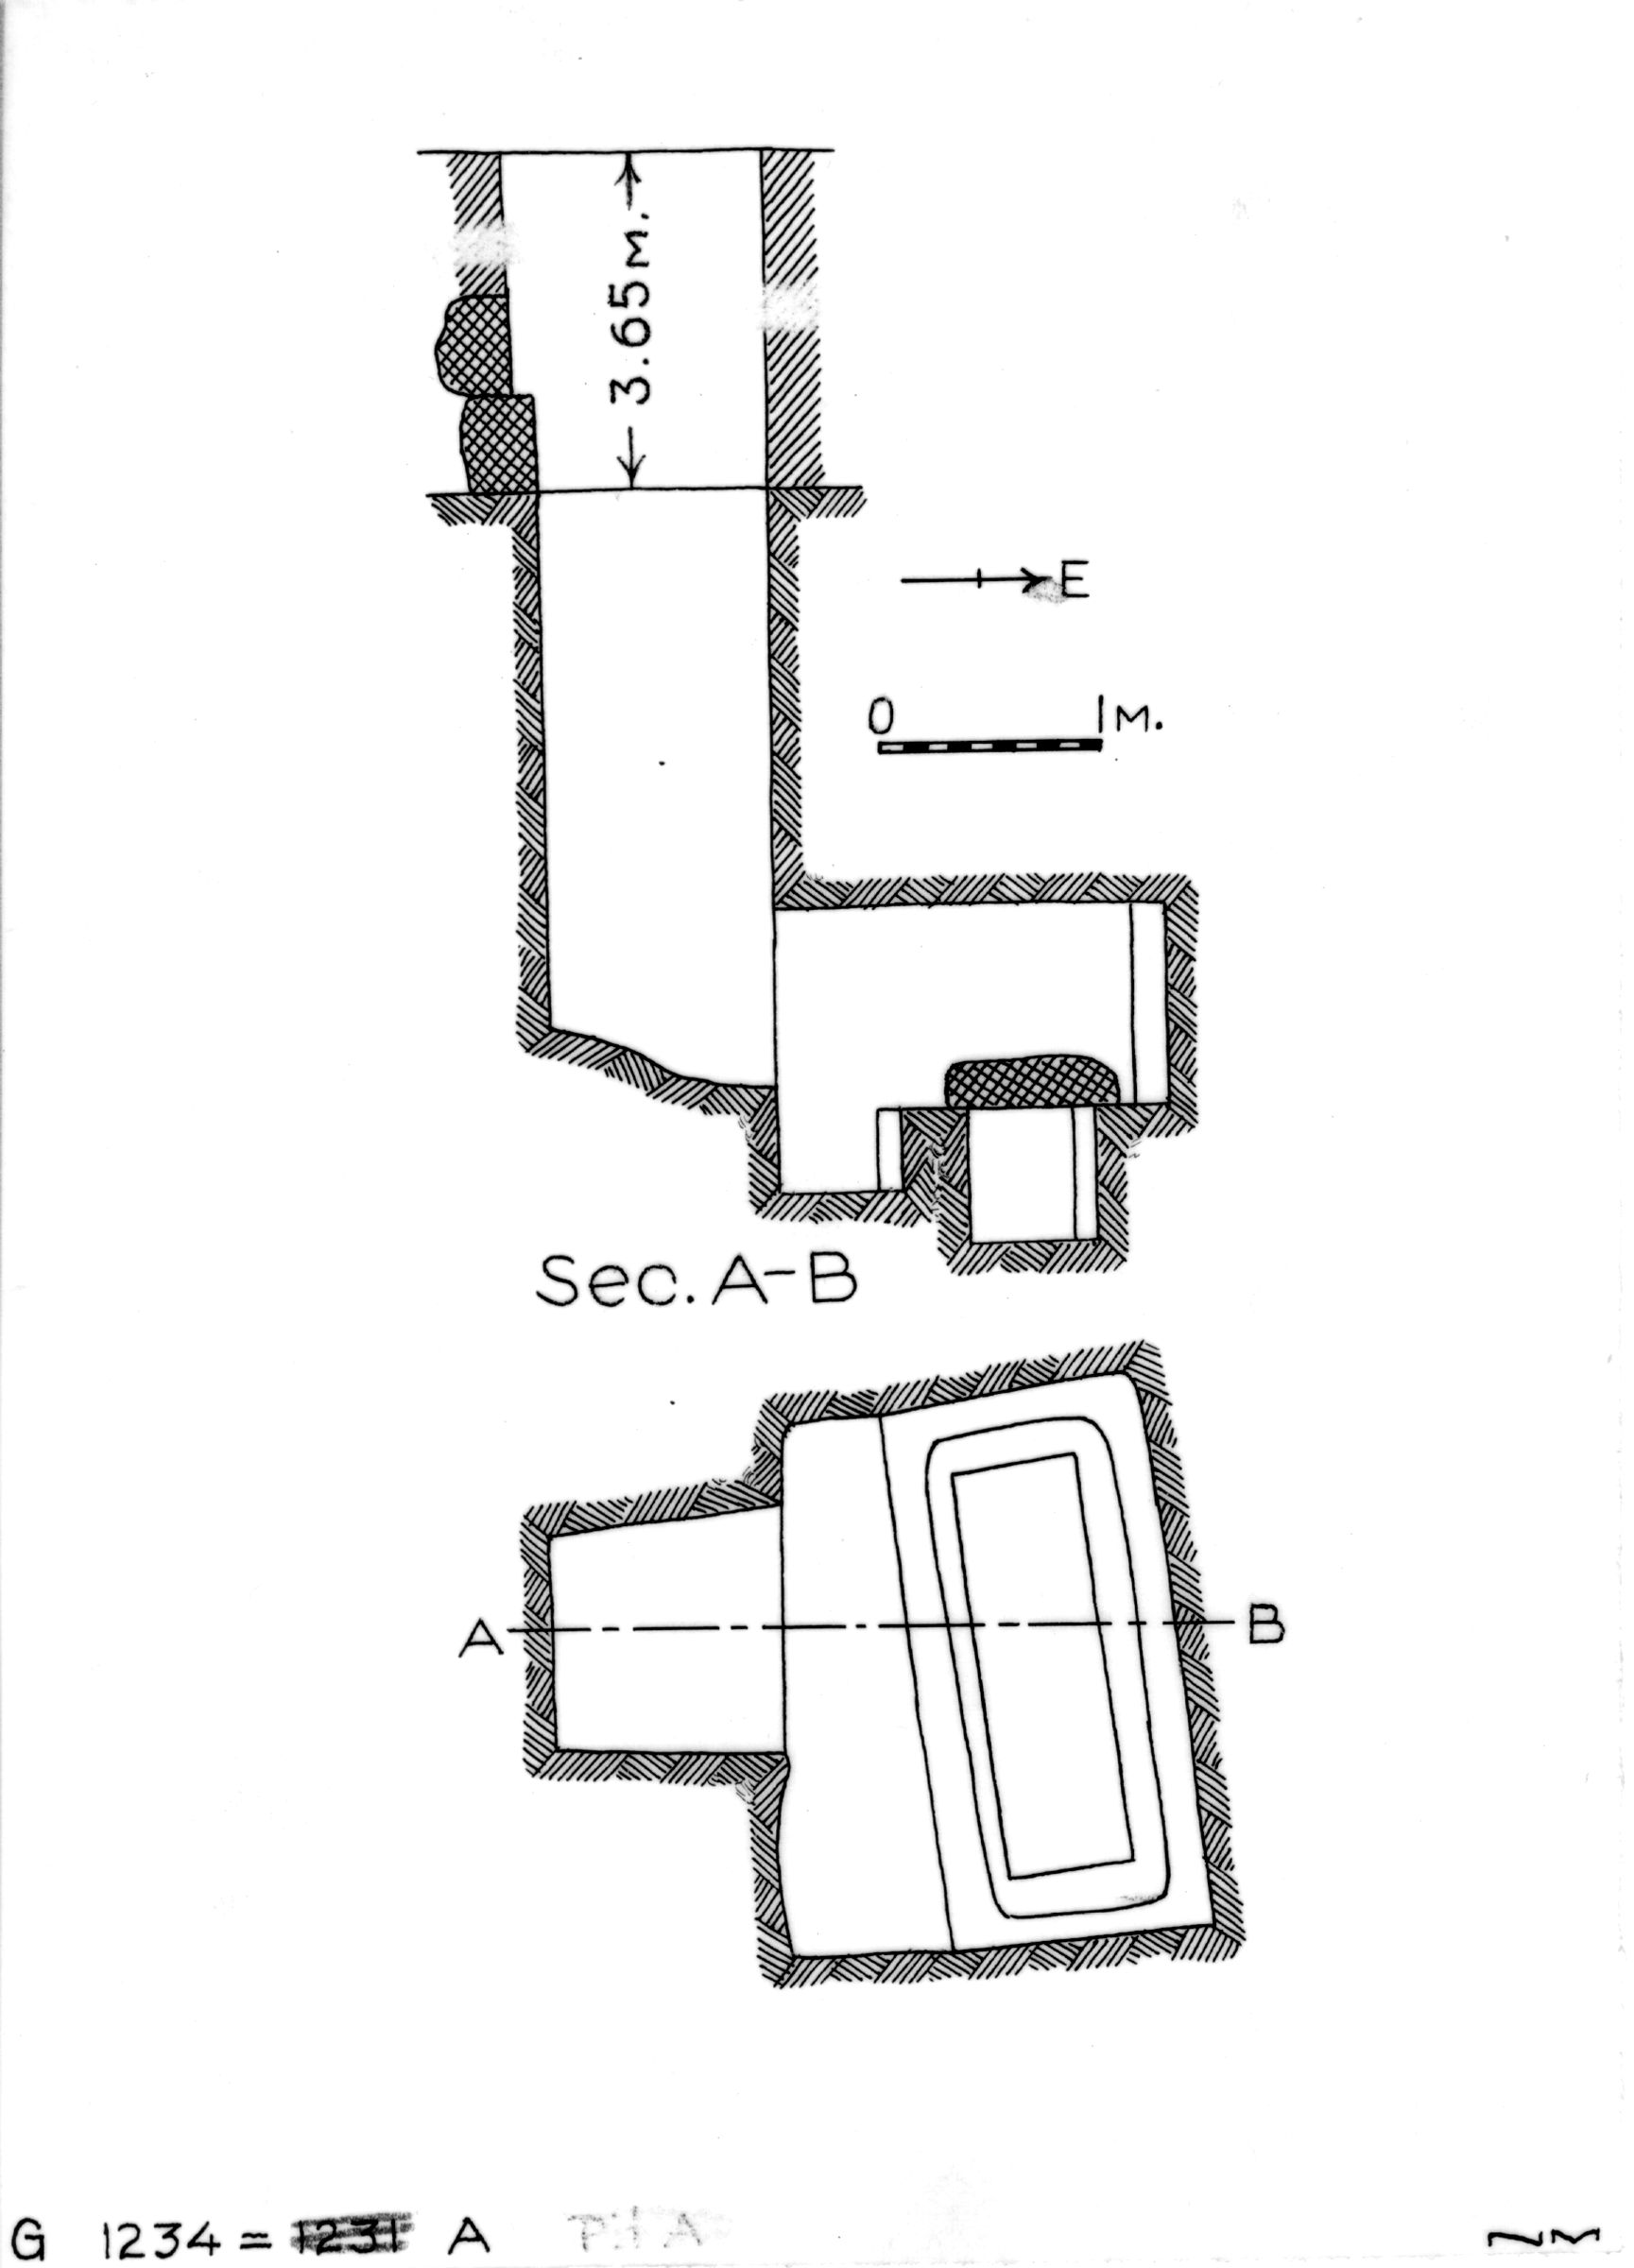 Maps and plans: G 1234, Shaft A